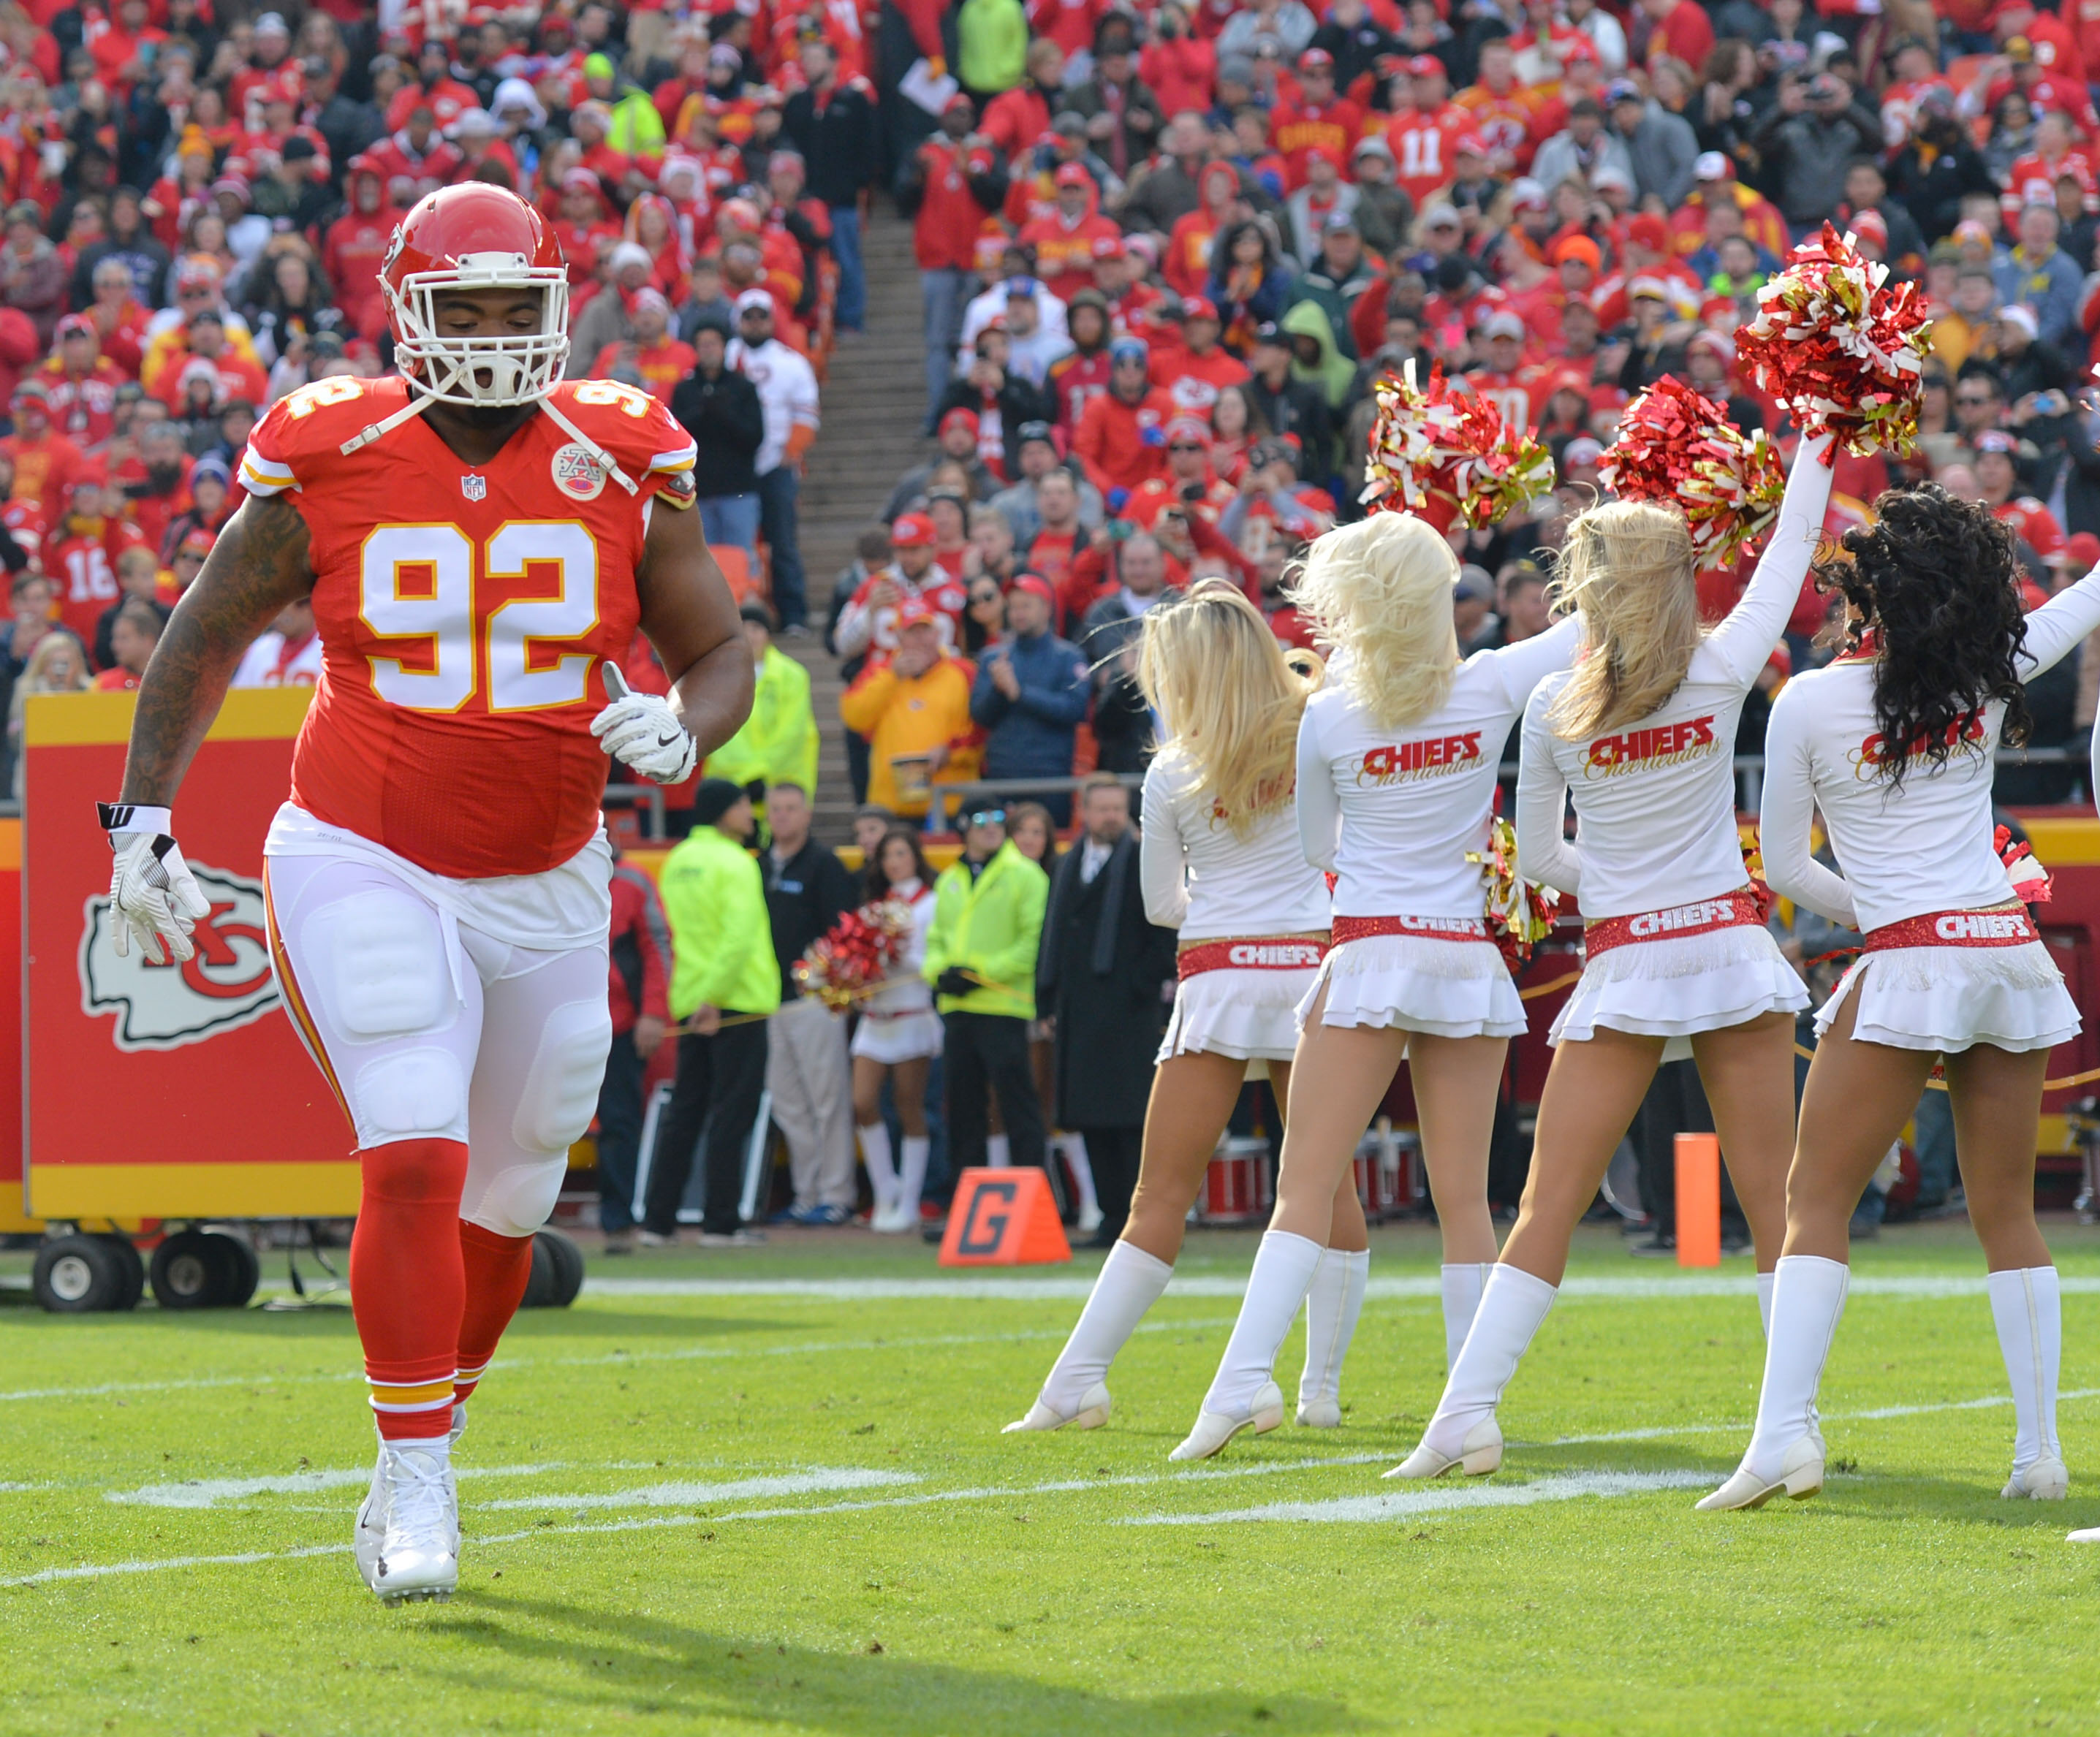 9704886-nfl-tampa-bay-buccaneers-at-kansas-city-chiefs-1